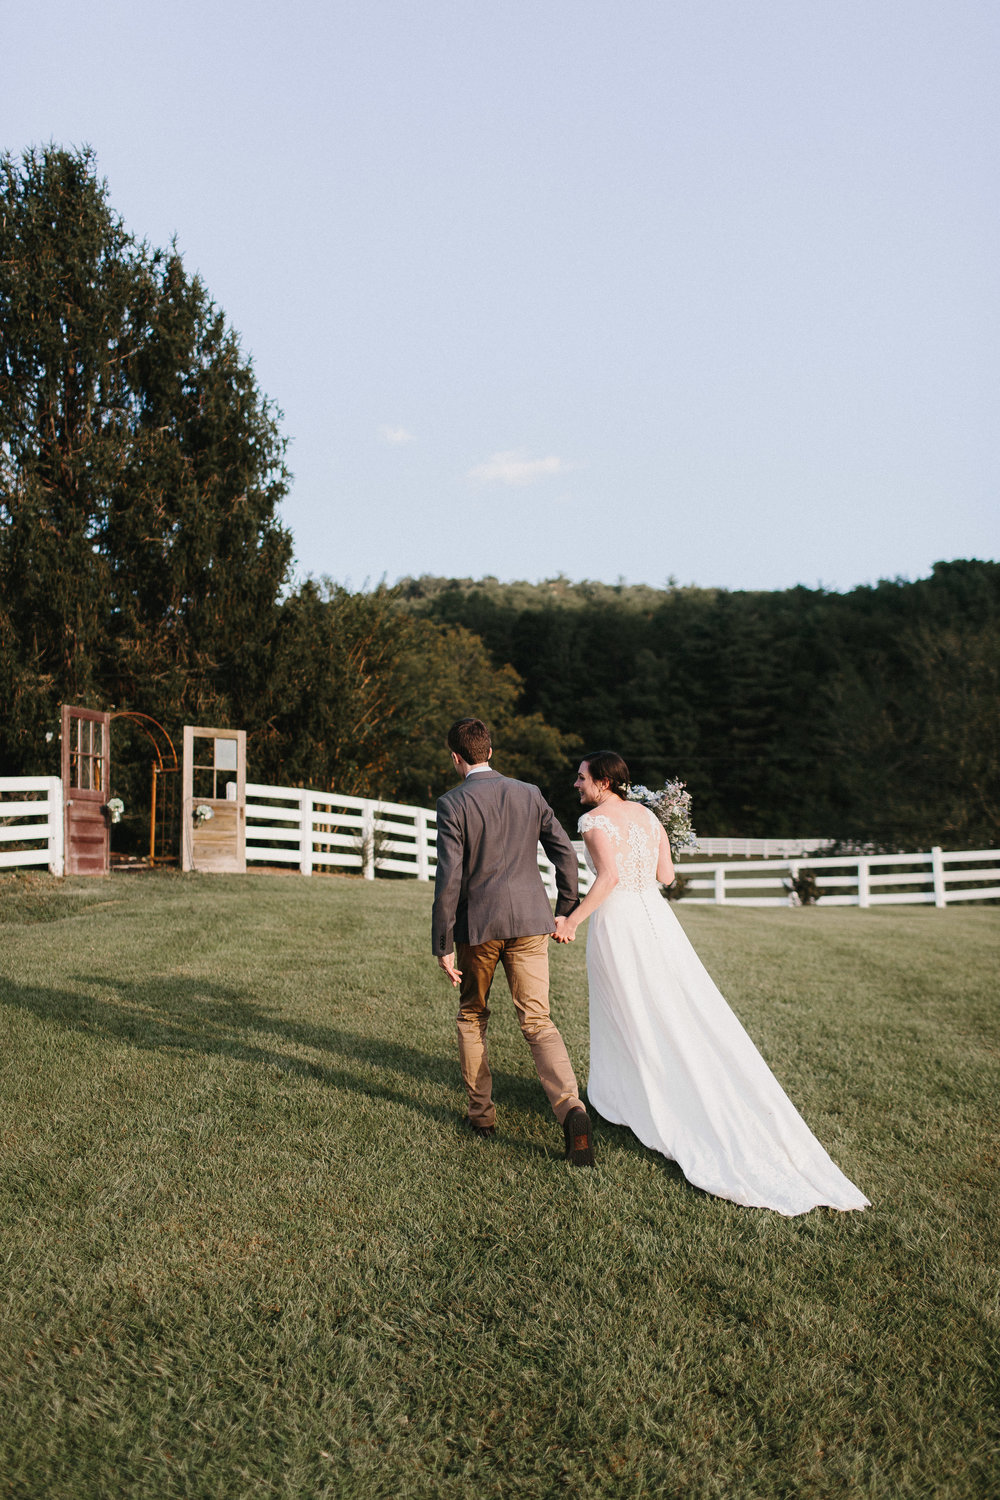 cleveland_georgia_mountain_laurel_farm_natural_classic_timeless_documentary_candid_wedding_emotional_photojournalism_river_west_1715.jpg